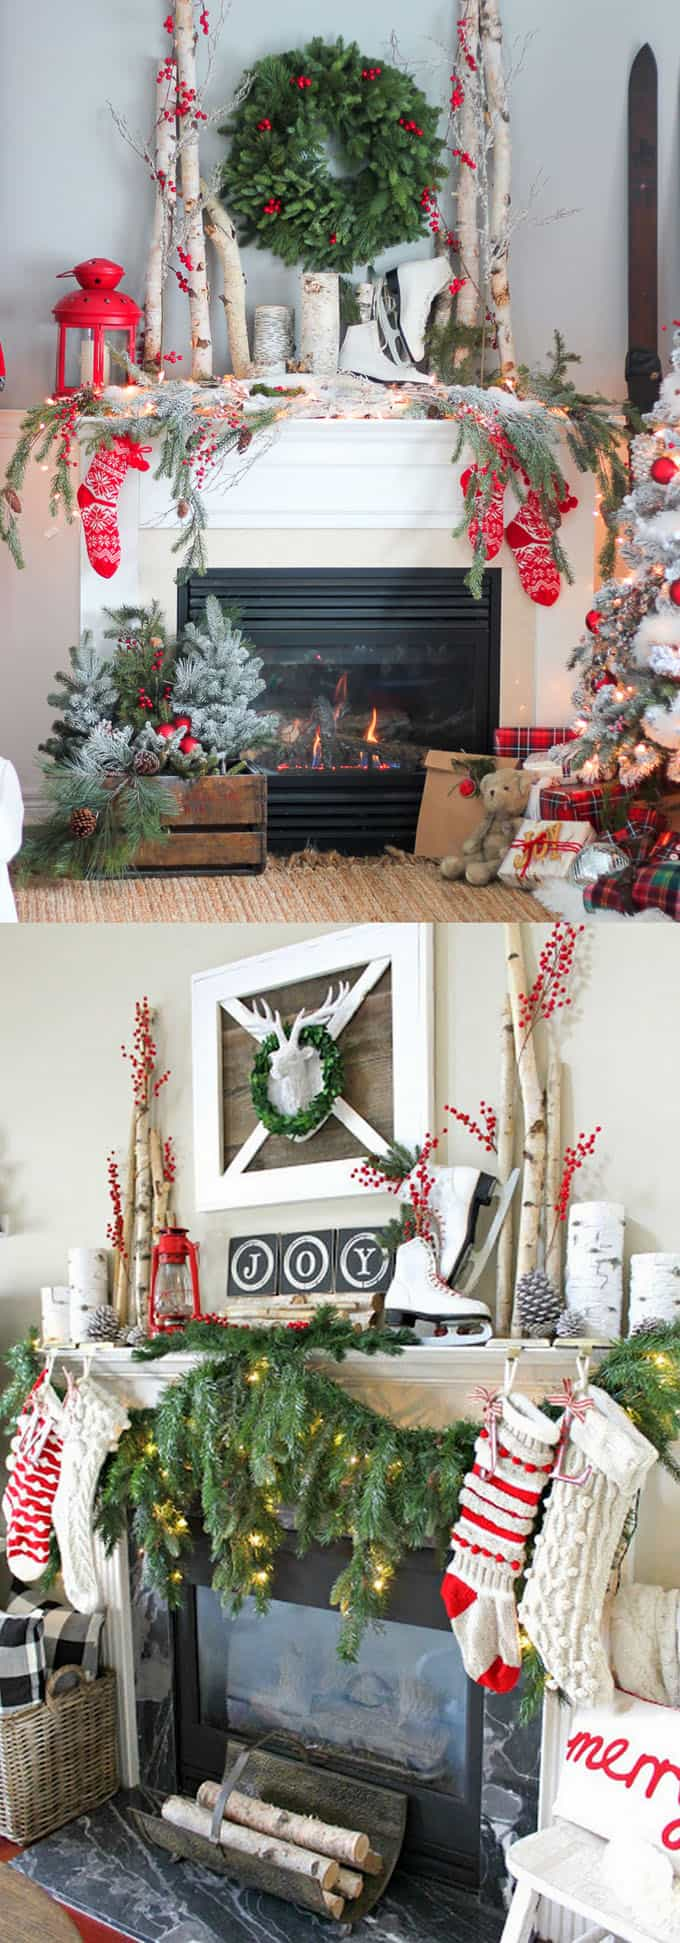 The Two Beautiful Christmas Fireplace Mantels Are Decorated With Ojects That Unmistakably Wreaths At Center Flanked By Irch Logs